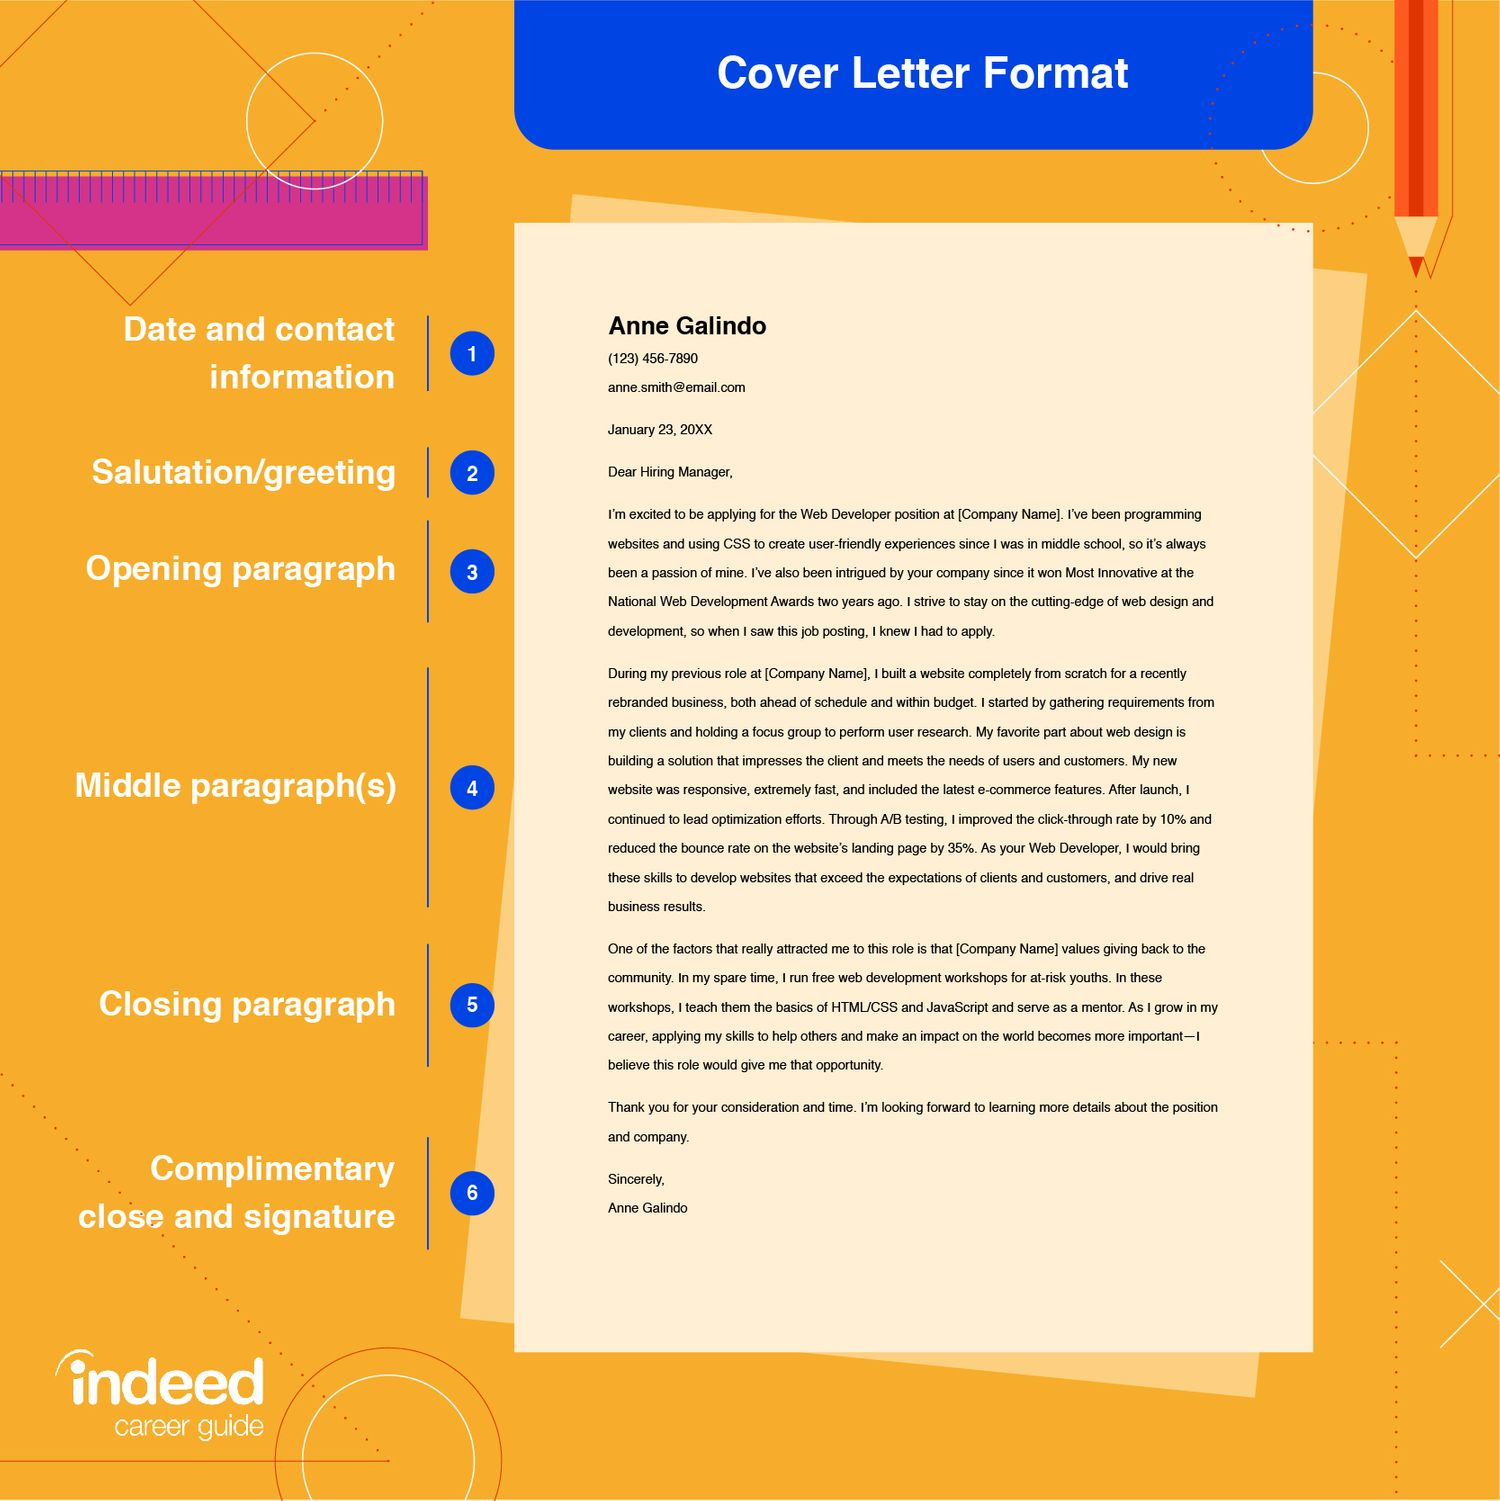 to write cover letter indeed apply with your resume resized group master of social work Resume Apply With Your Indeed Resume